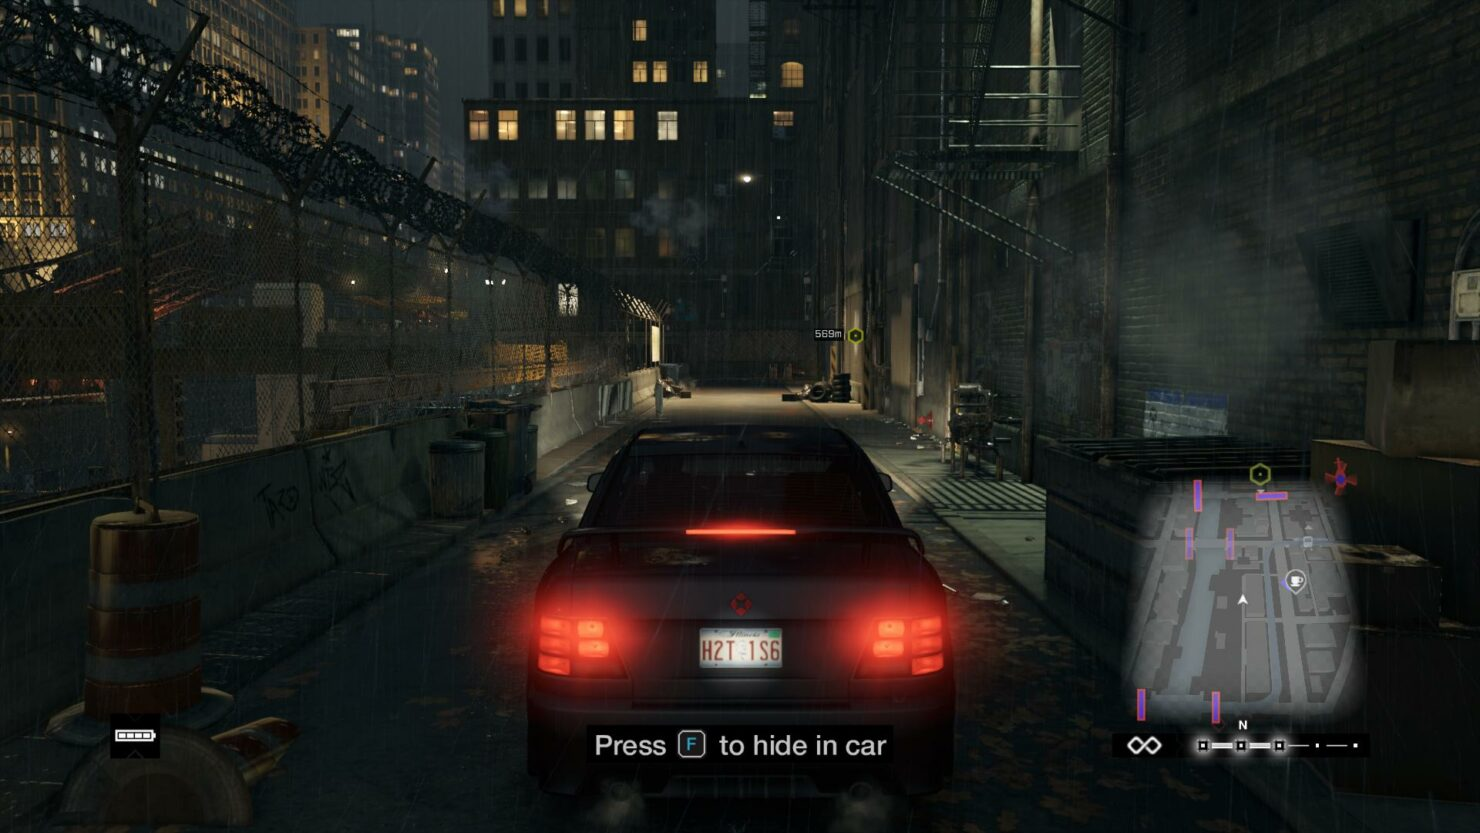 watch_dogs-2014-05-24-15-35-25-66